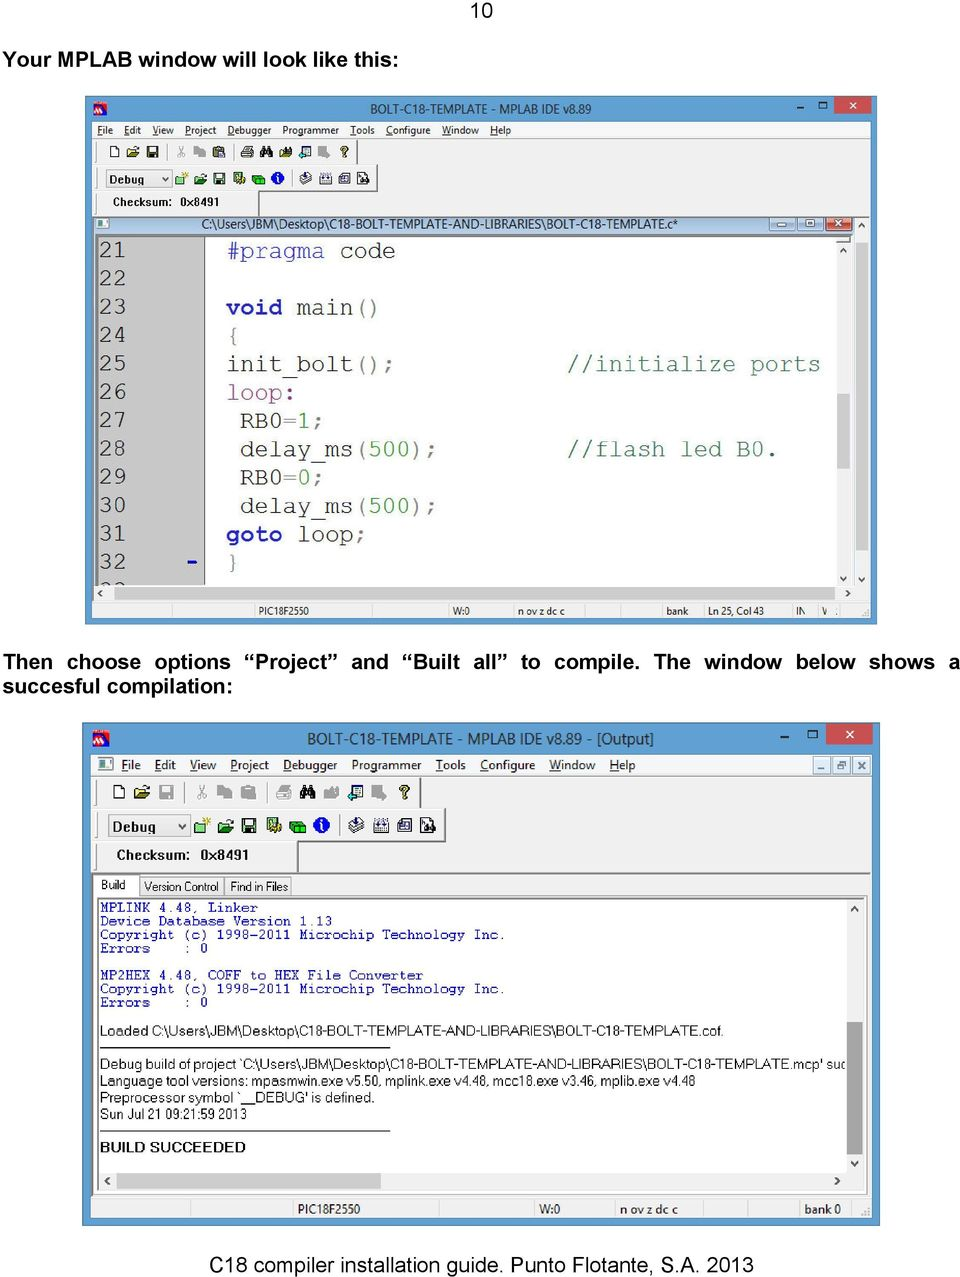 GUIDE FOR THE INSTALLATION OF C18 COMPILER IN MPLAB IDE - PDF